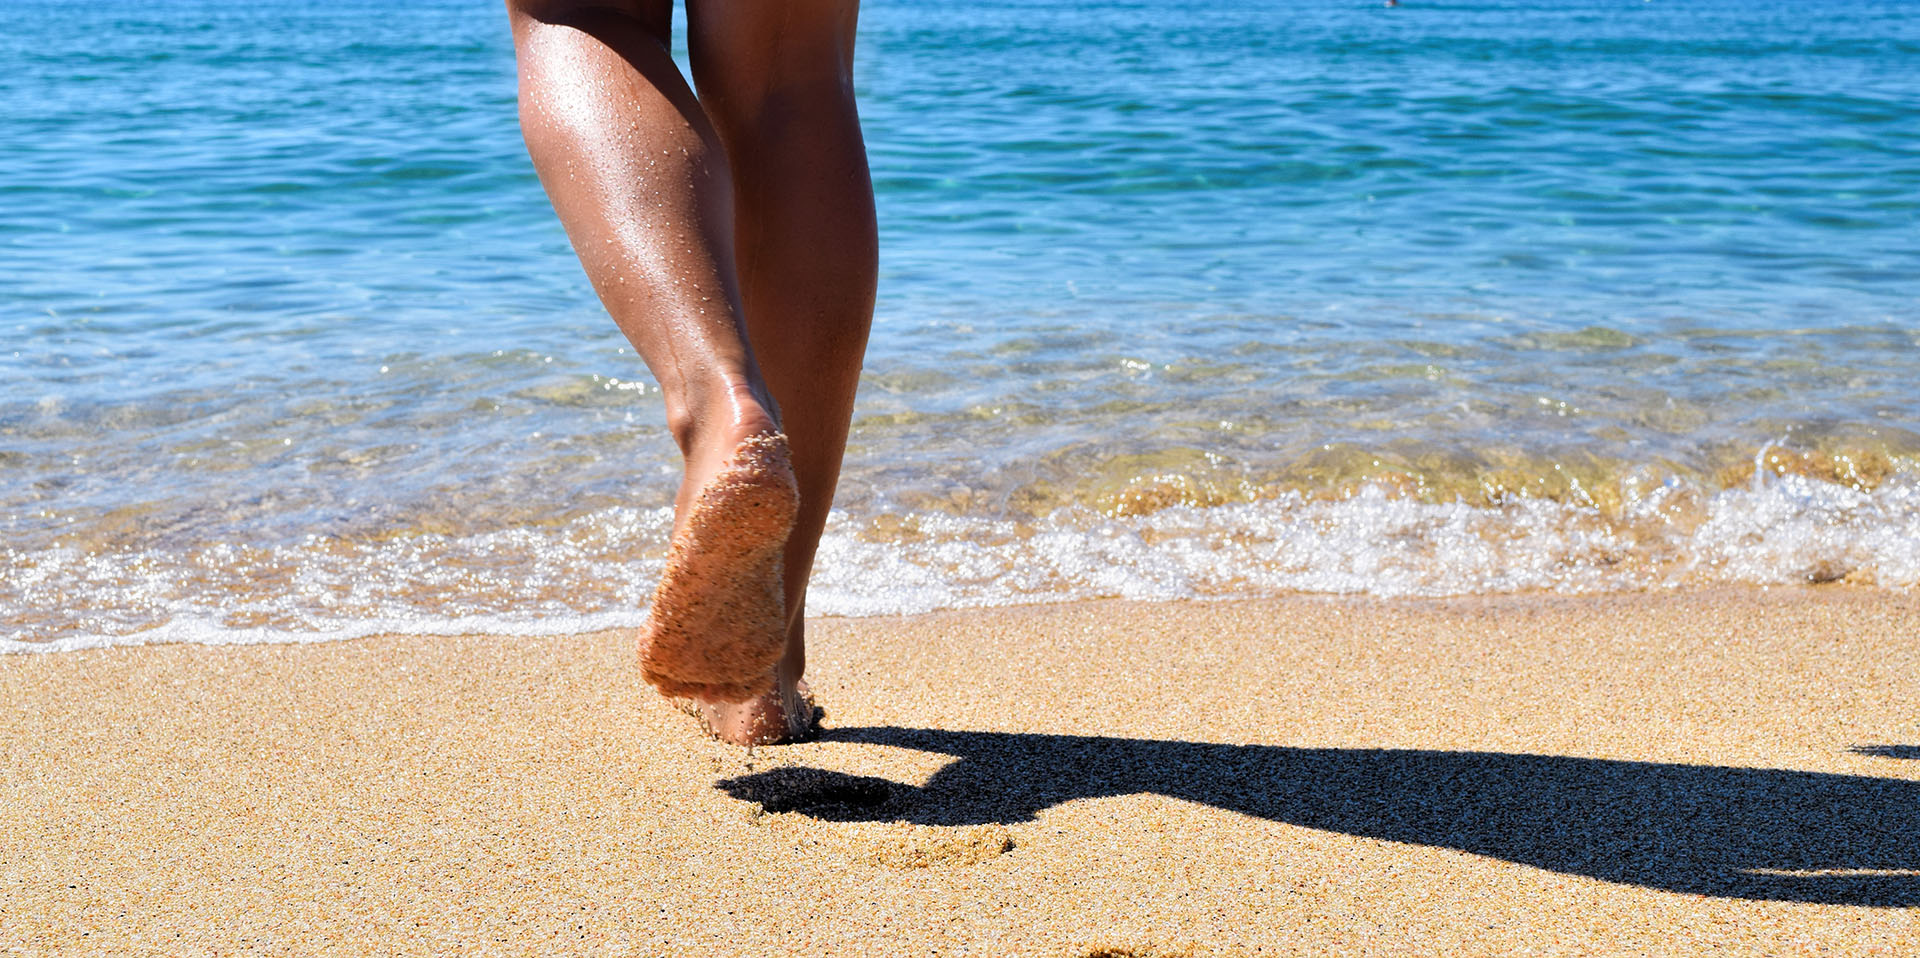 SAY GOODBYE TO THOSE UGLY VARICOSE VEINS